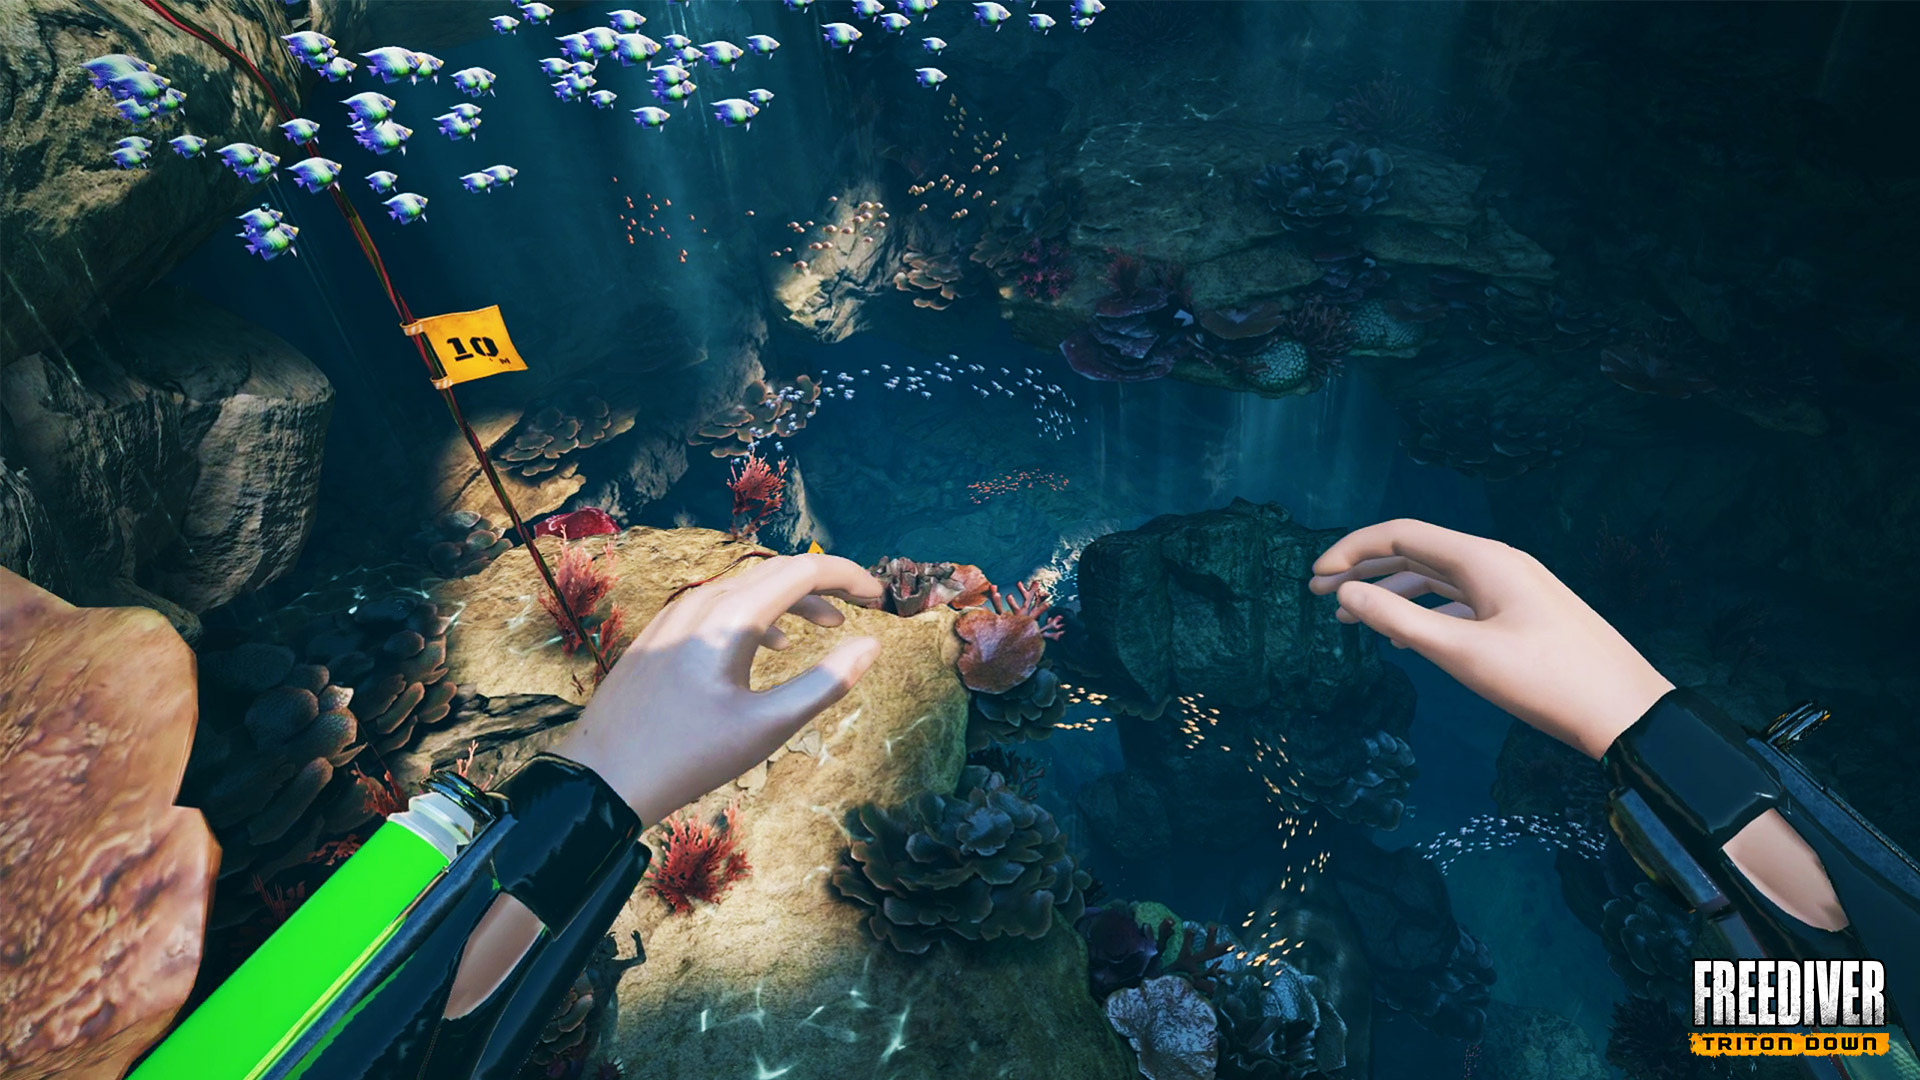 Freediver: Triton Down is a Short VR Adventure Full of Good Ideas